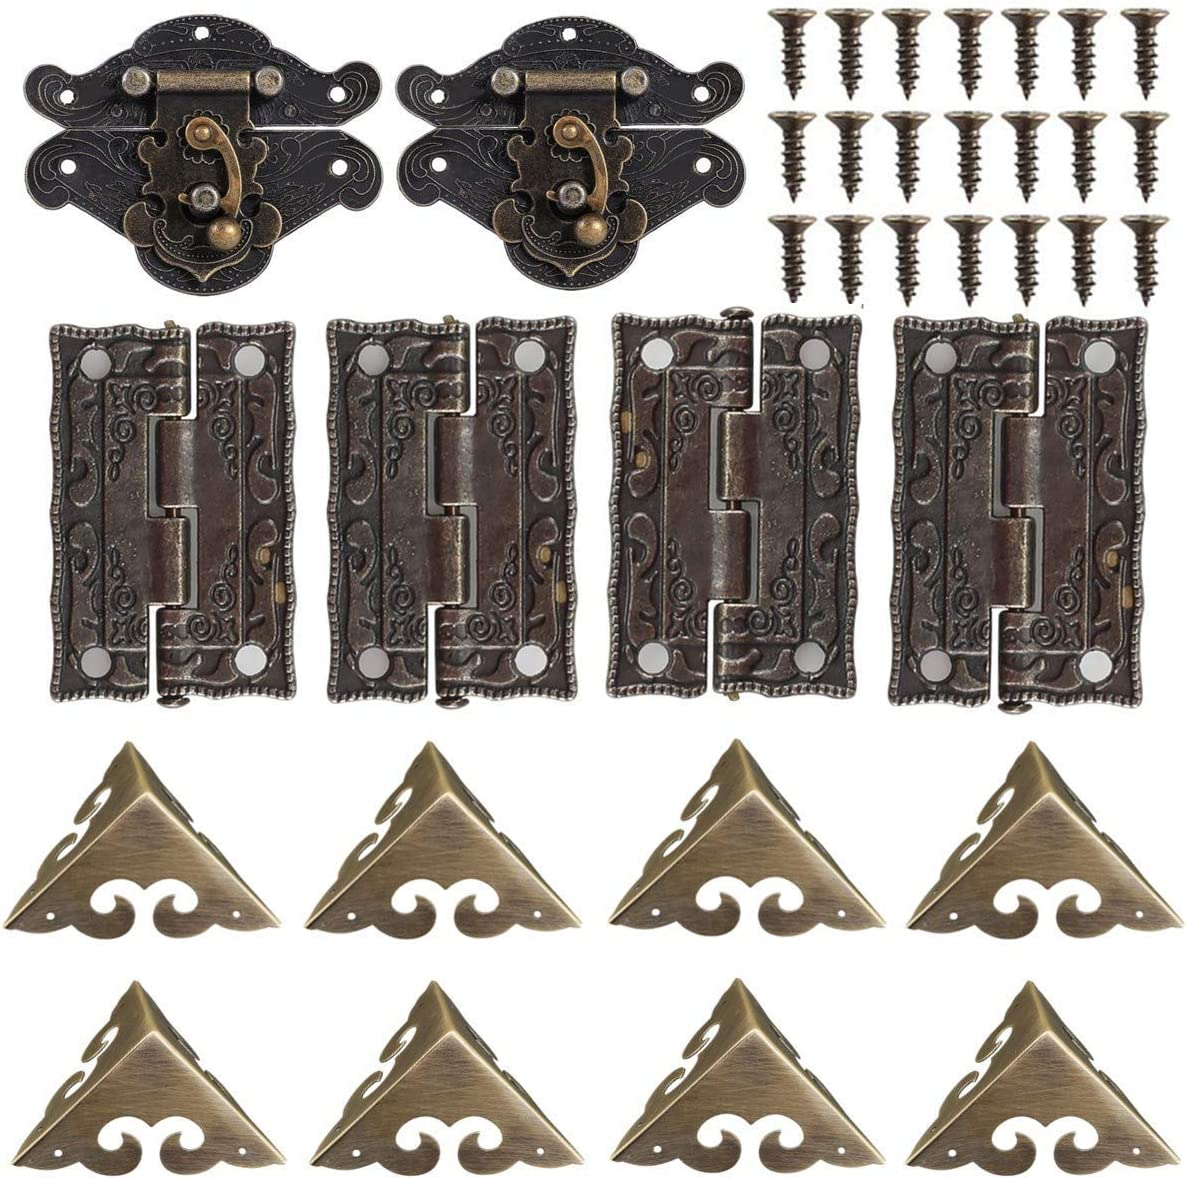 2 Sets Wood Case Chest Box Hasp Latch Lock Retro Decorative Hinges and Box Corner Protectors with Screws Jewelry Box Hardware